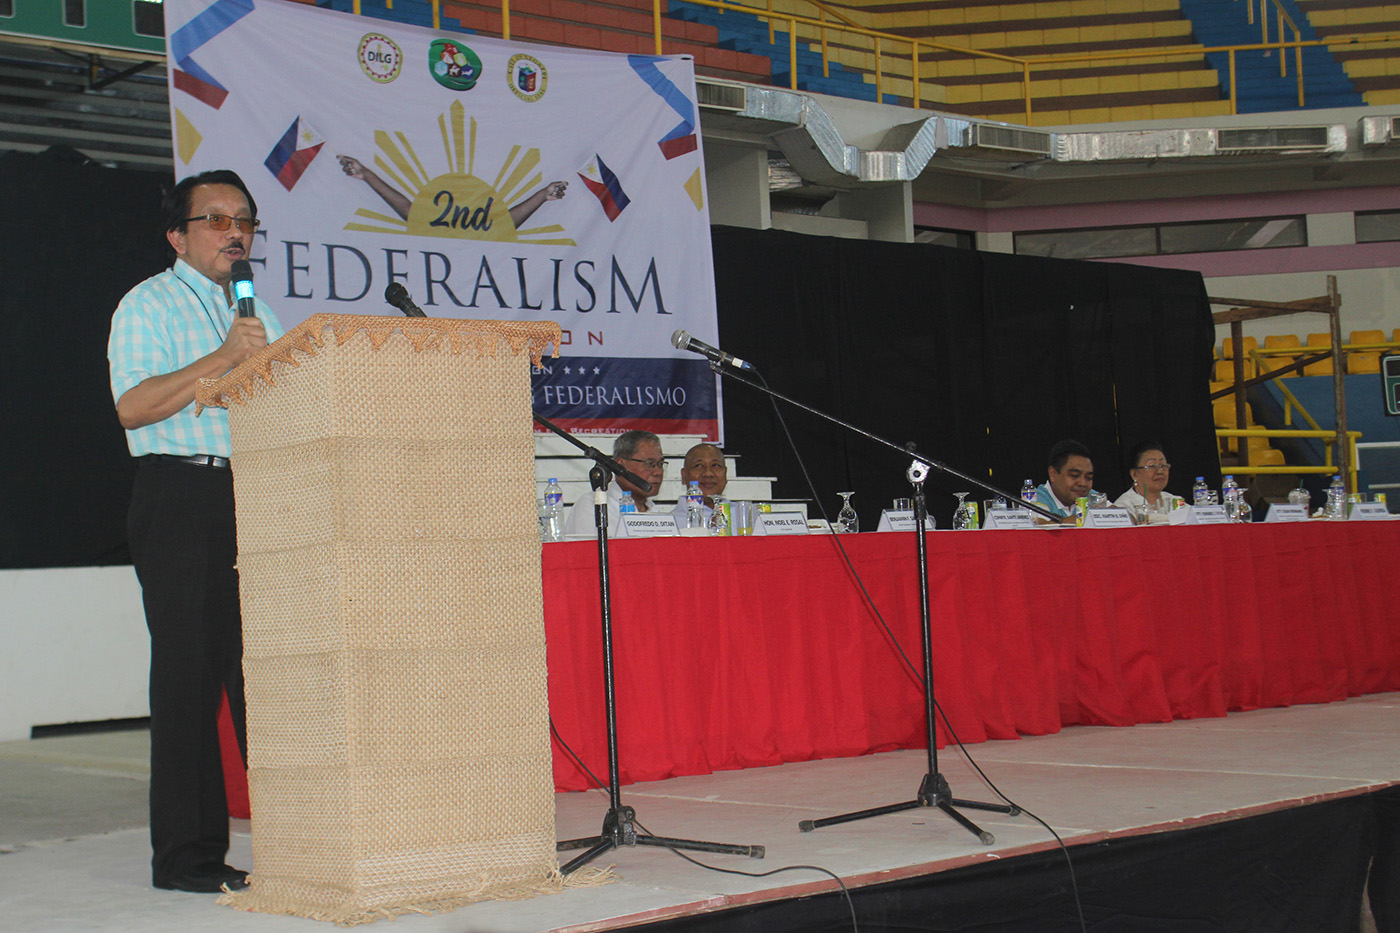 ANTI-CORRUPTION CHIEF. Dante Jimenez, Chairman of the Presidential Anti-Corruption Commission, addresses the 2nd convention on federalism in Legazpi, Albay, on December 7, 2018. Photo by Rhaydz Barcia/Rappler